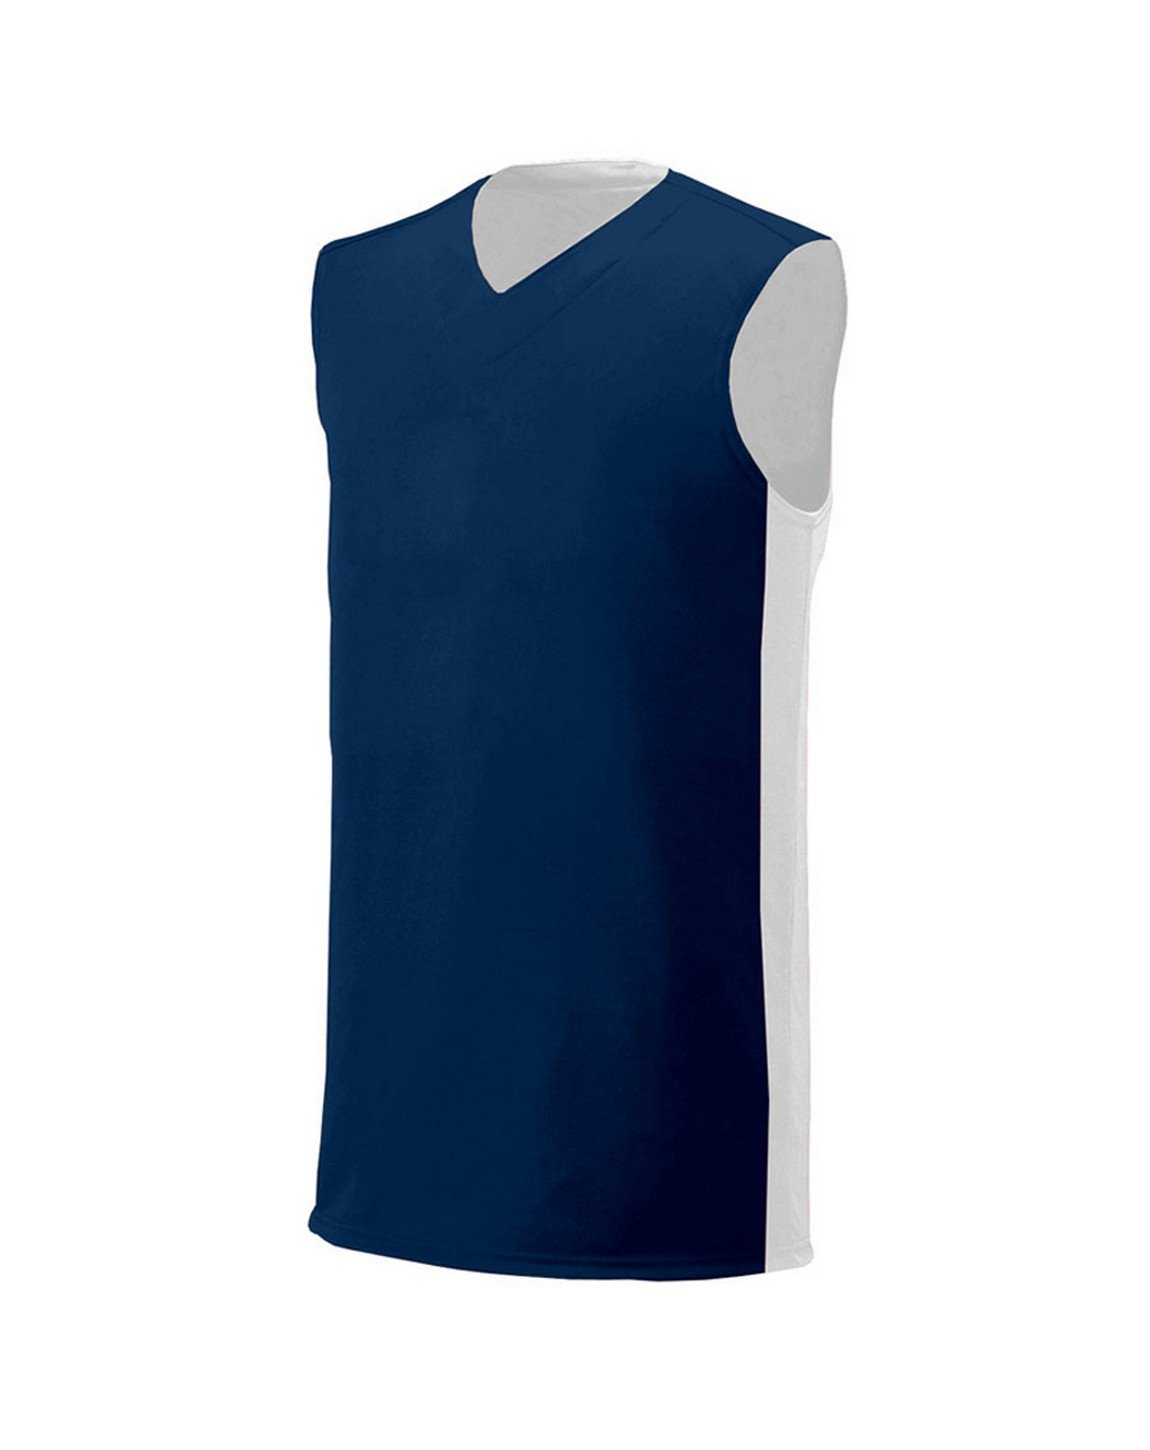 A4 NB2320 Youth Reversible Moisture Management Muscle Navy/White